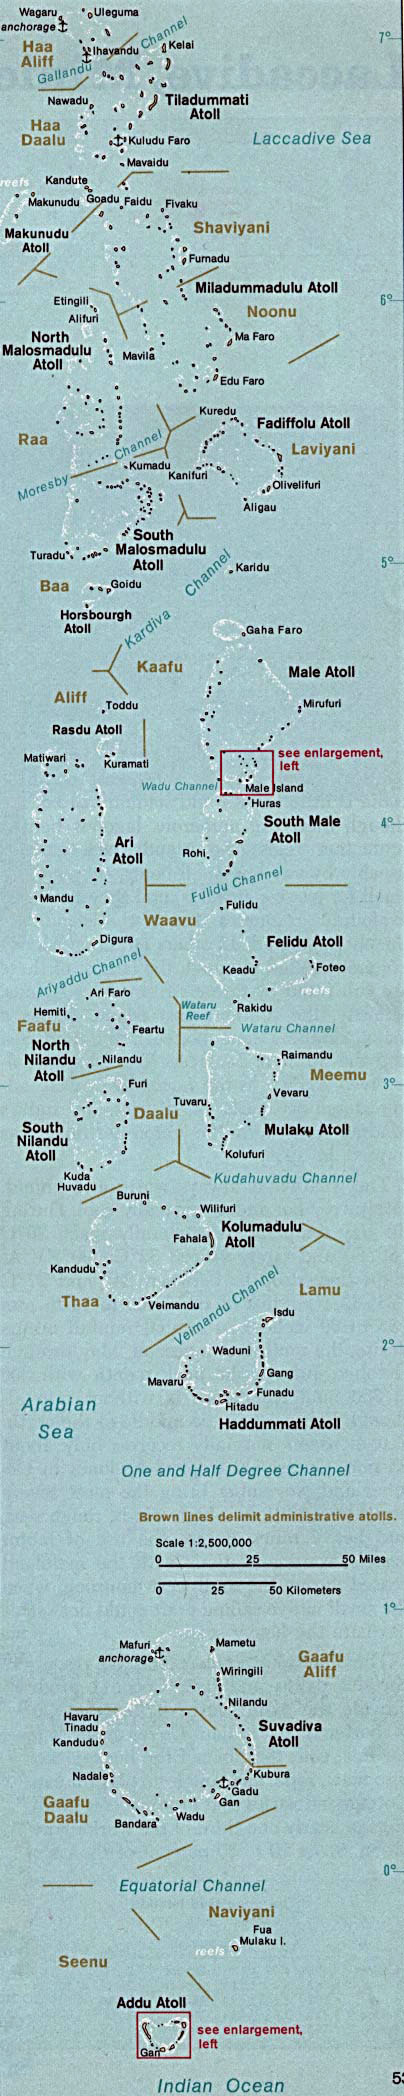 Maps of maldives detailed map of maldives in english tourist detailed map of maldives 1976 sciox Gallery